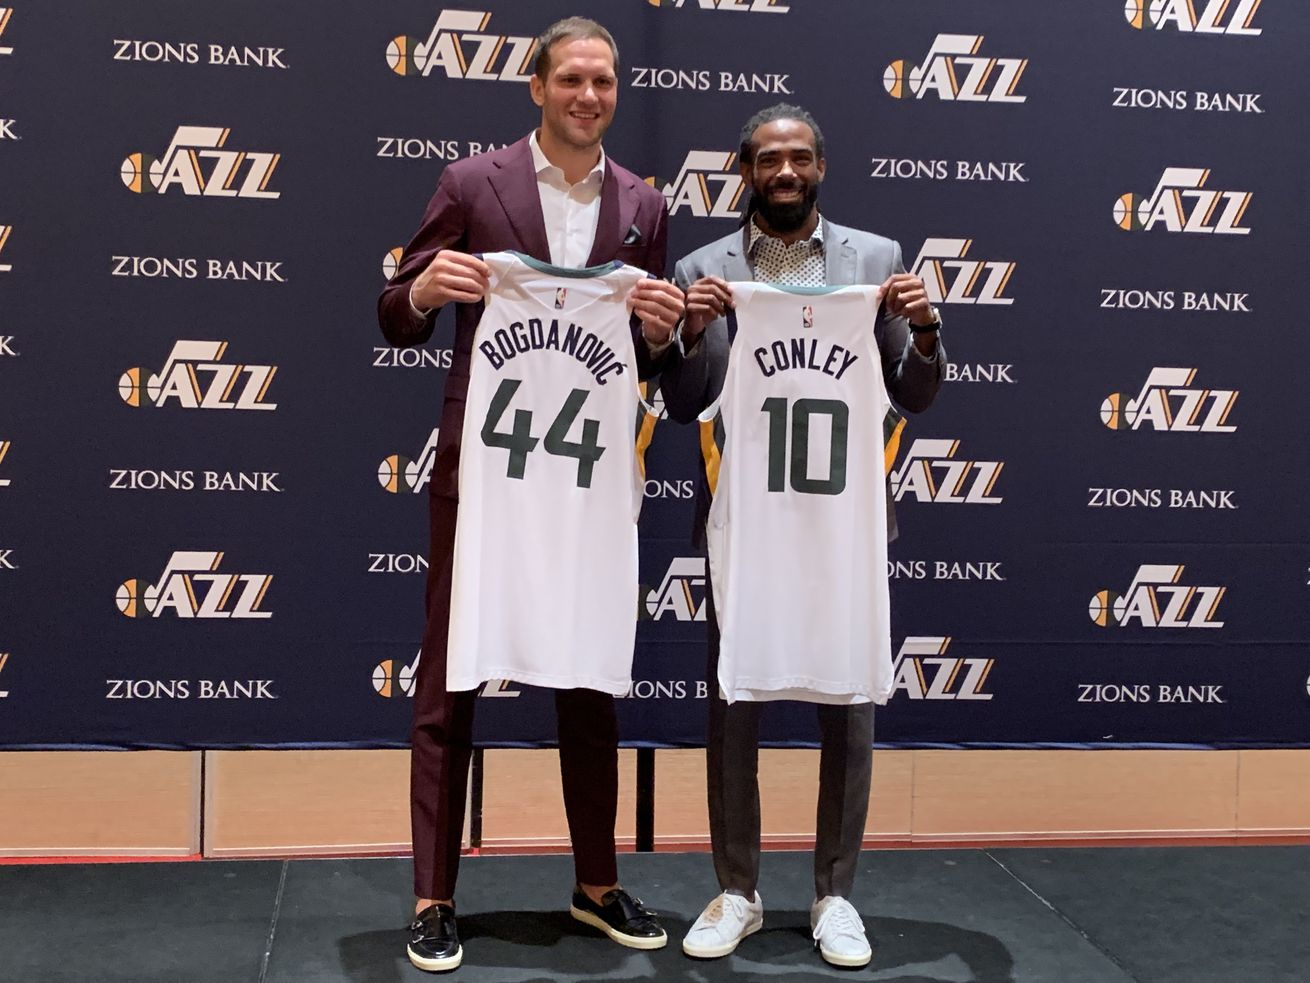 Survey of NBA GMs says Utah Jazz's acquisitions of Mike Conley, Bojan Bogdanovic the most underrated of offseason